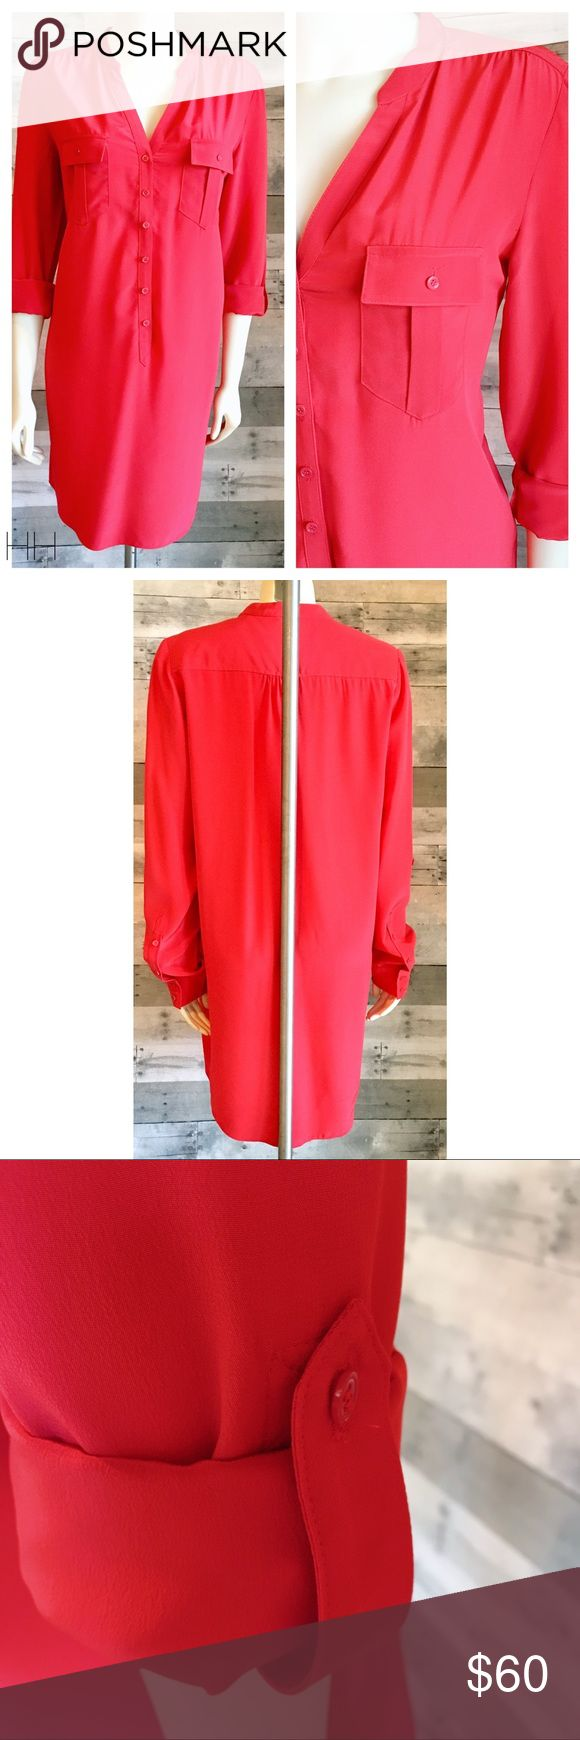 100% silk shirt dress roll sleeves orange red Classic shirt dress with front pockets and button down placket.  Dress features roll sleeves to serve as either full length sleeve or 3/4 sleeve.  100% silk No belt included Haute Hippie Dresses